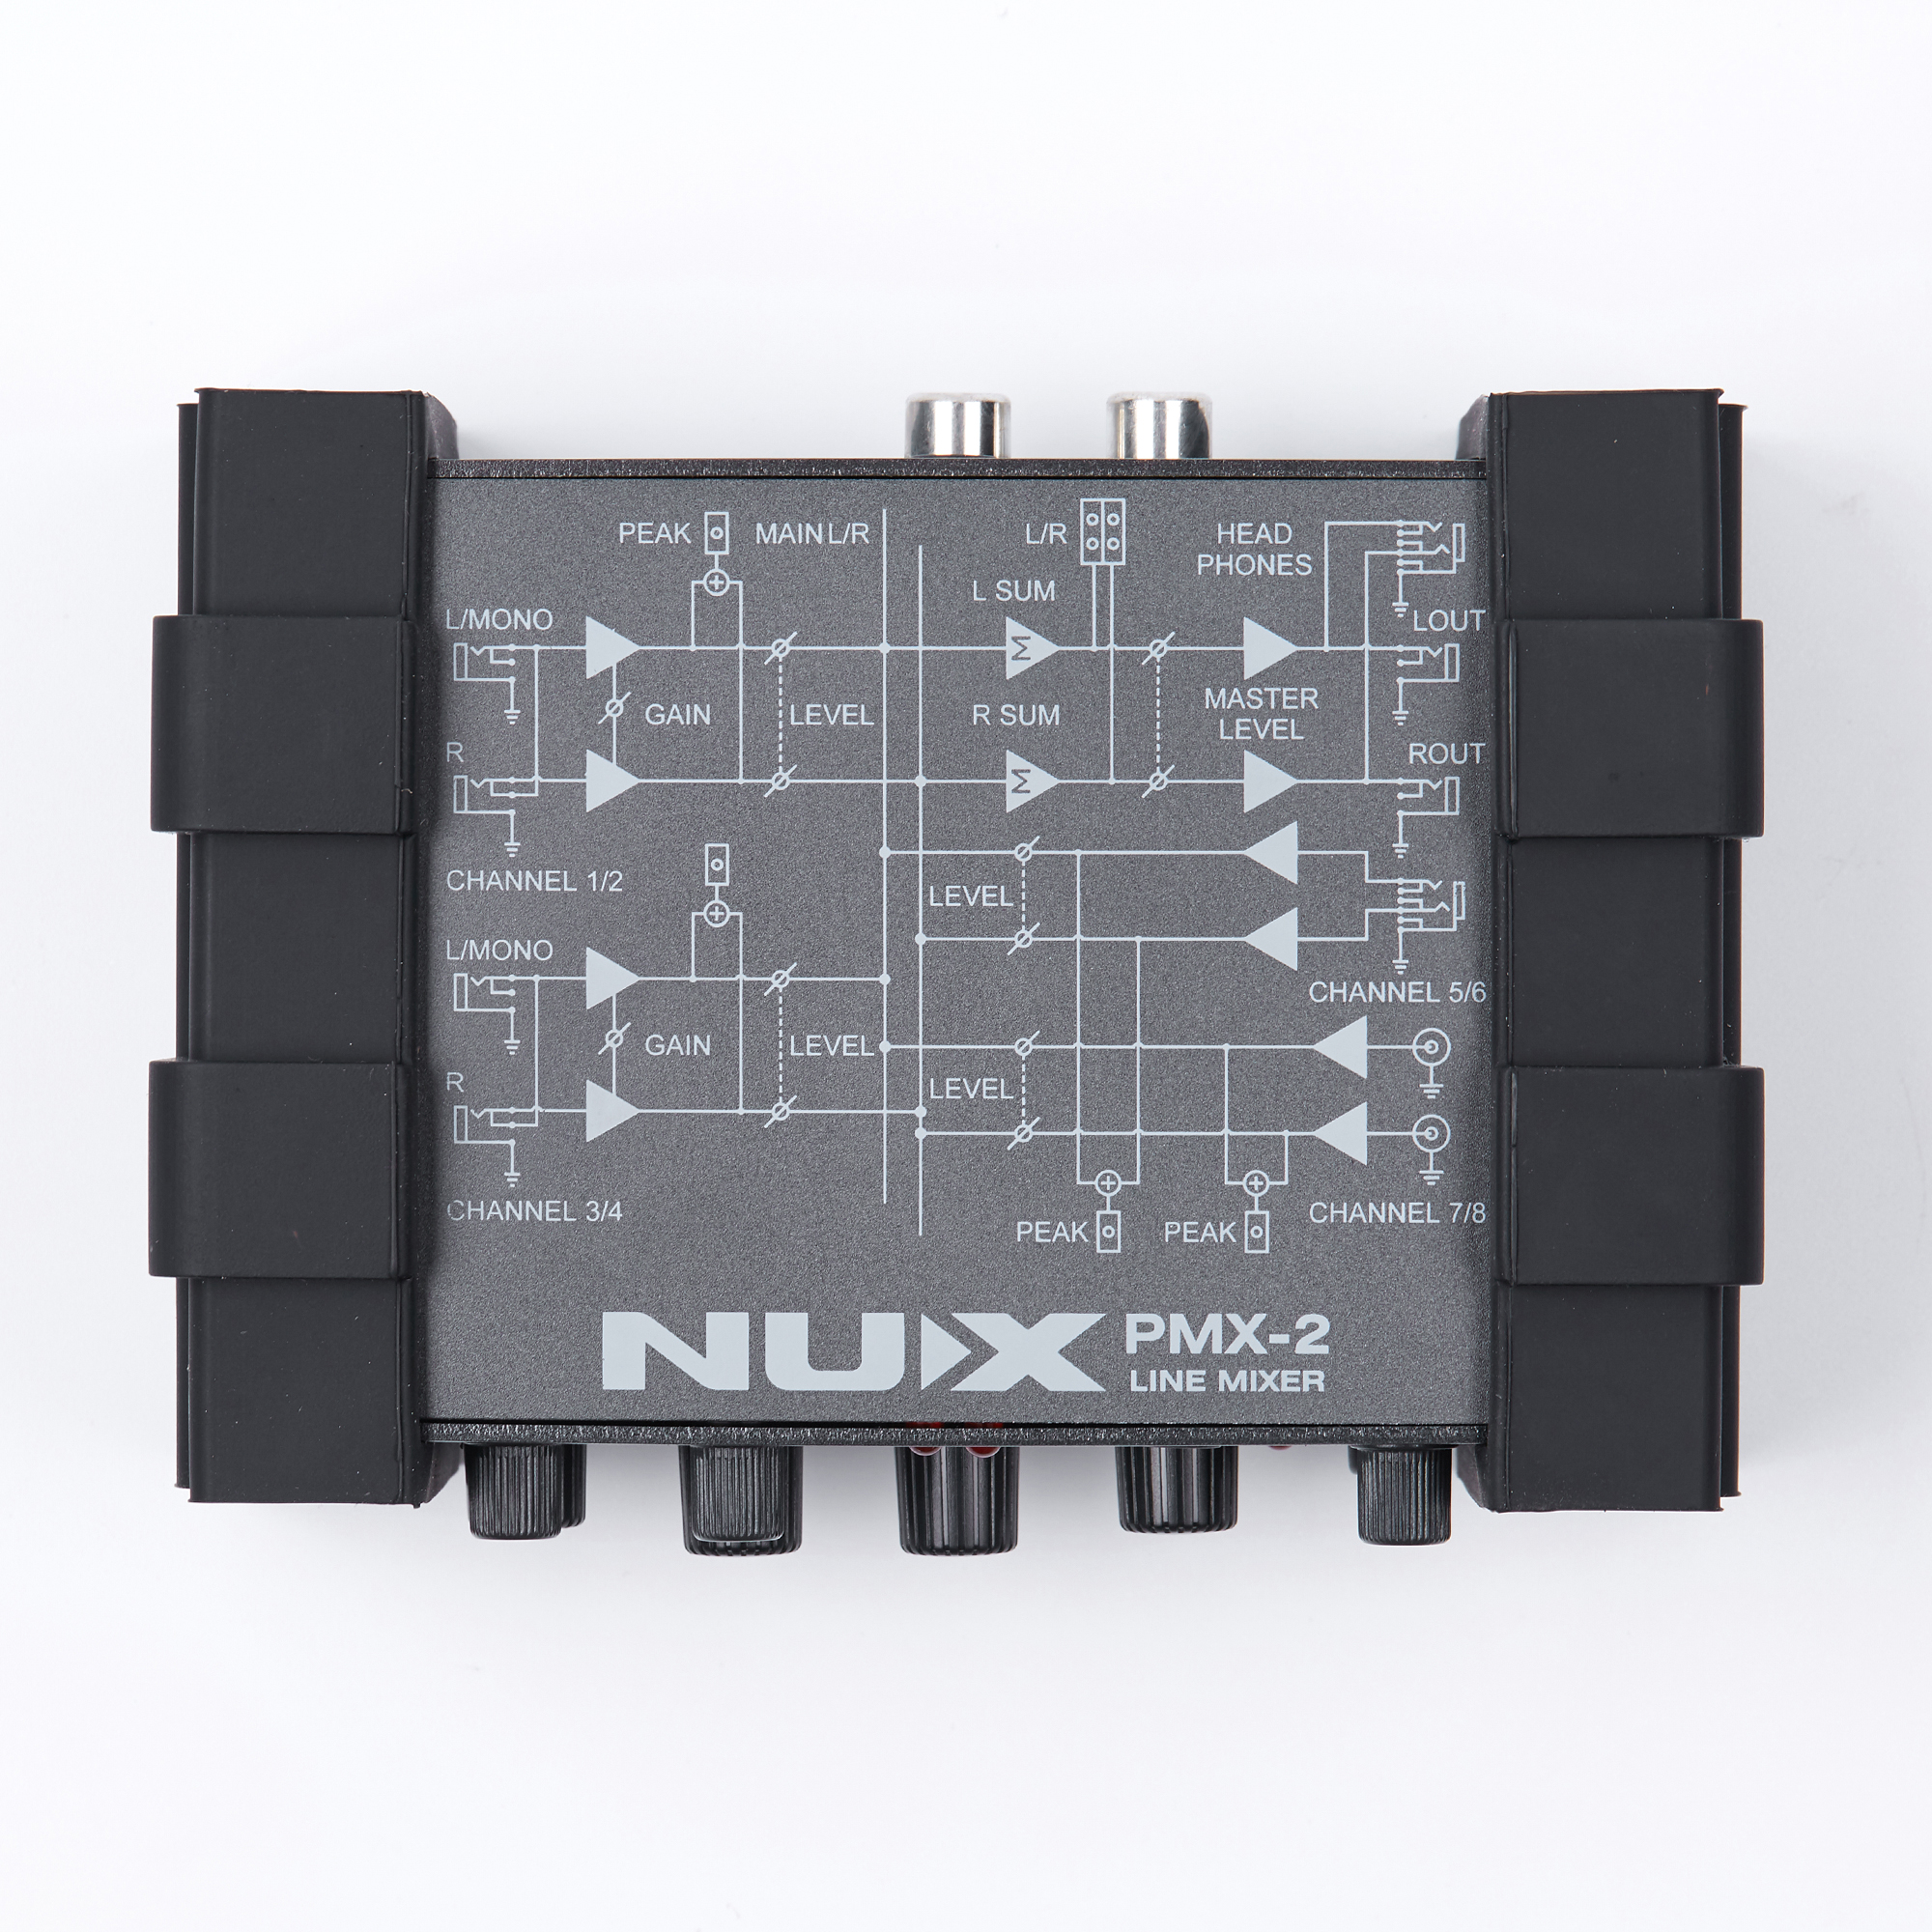 Gain Control 8 Inputs and 2 Outputs NUX PMX-2 Multi-Channel Mini Mixer 30 Musical Instruments Accessories for Guitar Bass Player подвесная люстра mw light афродита 1 317010809